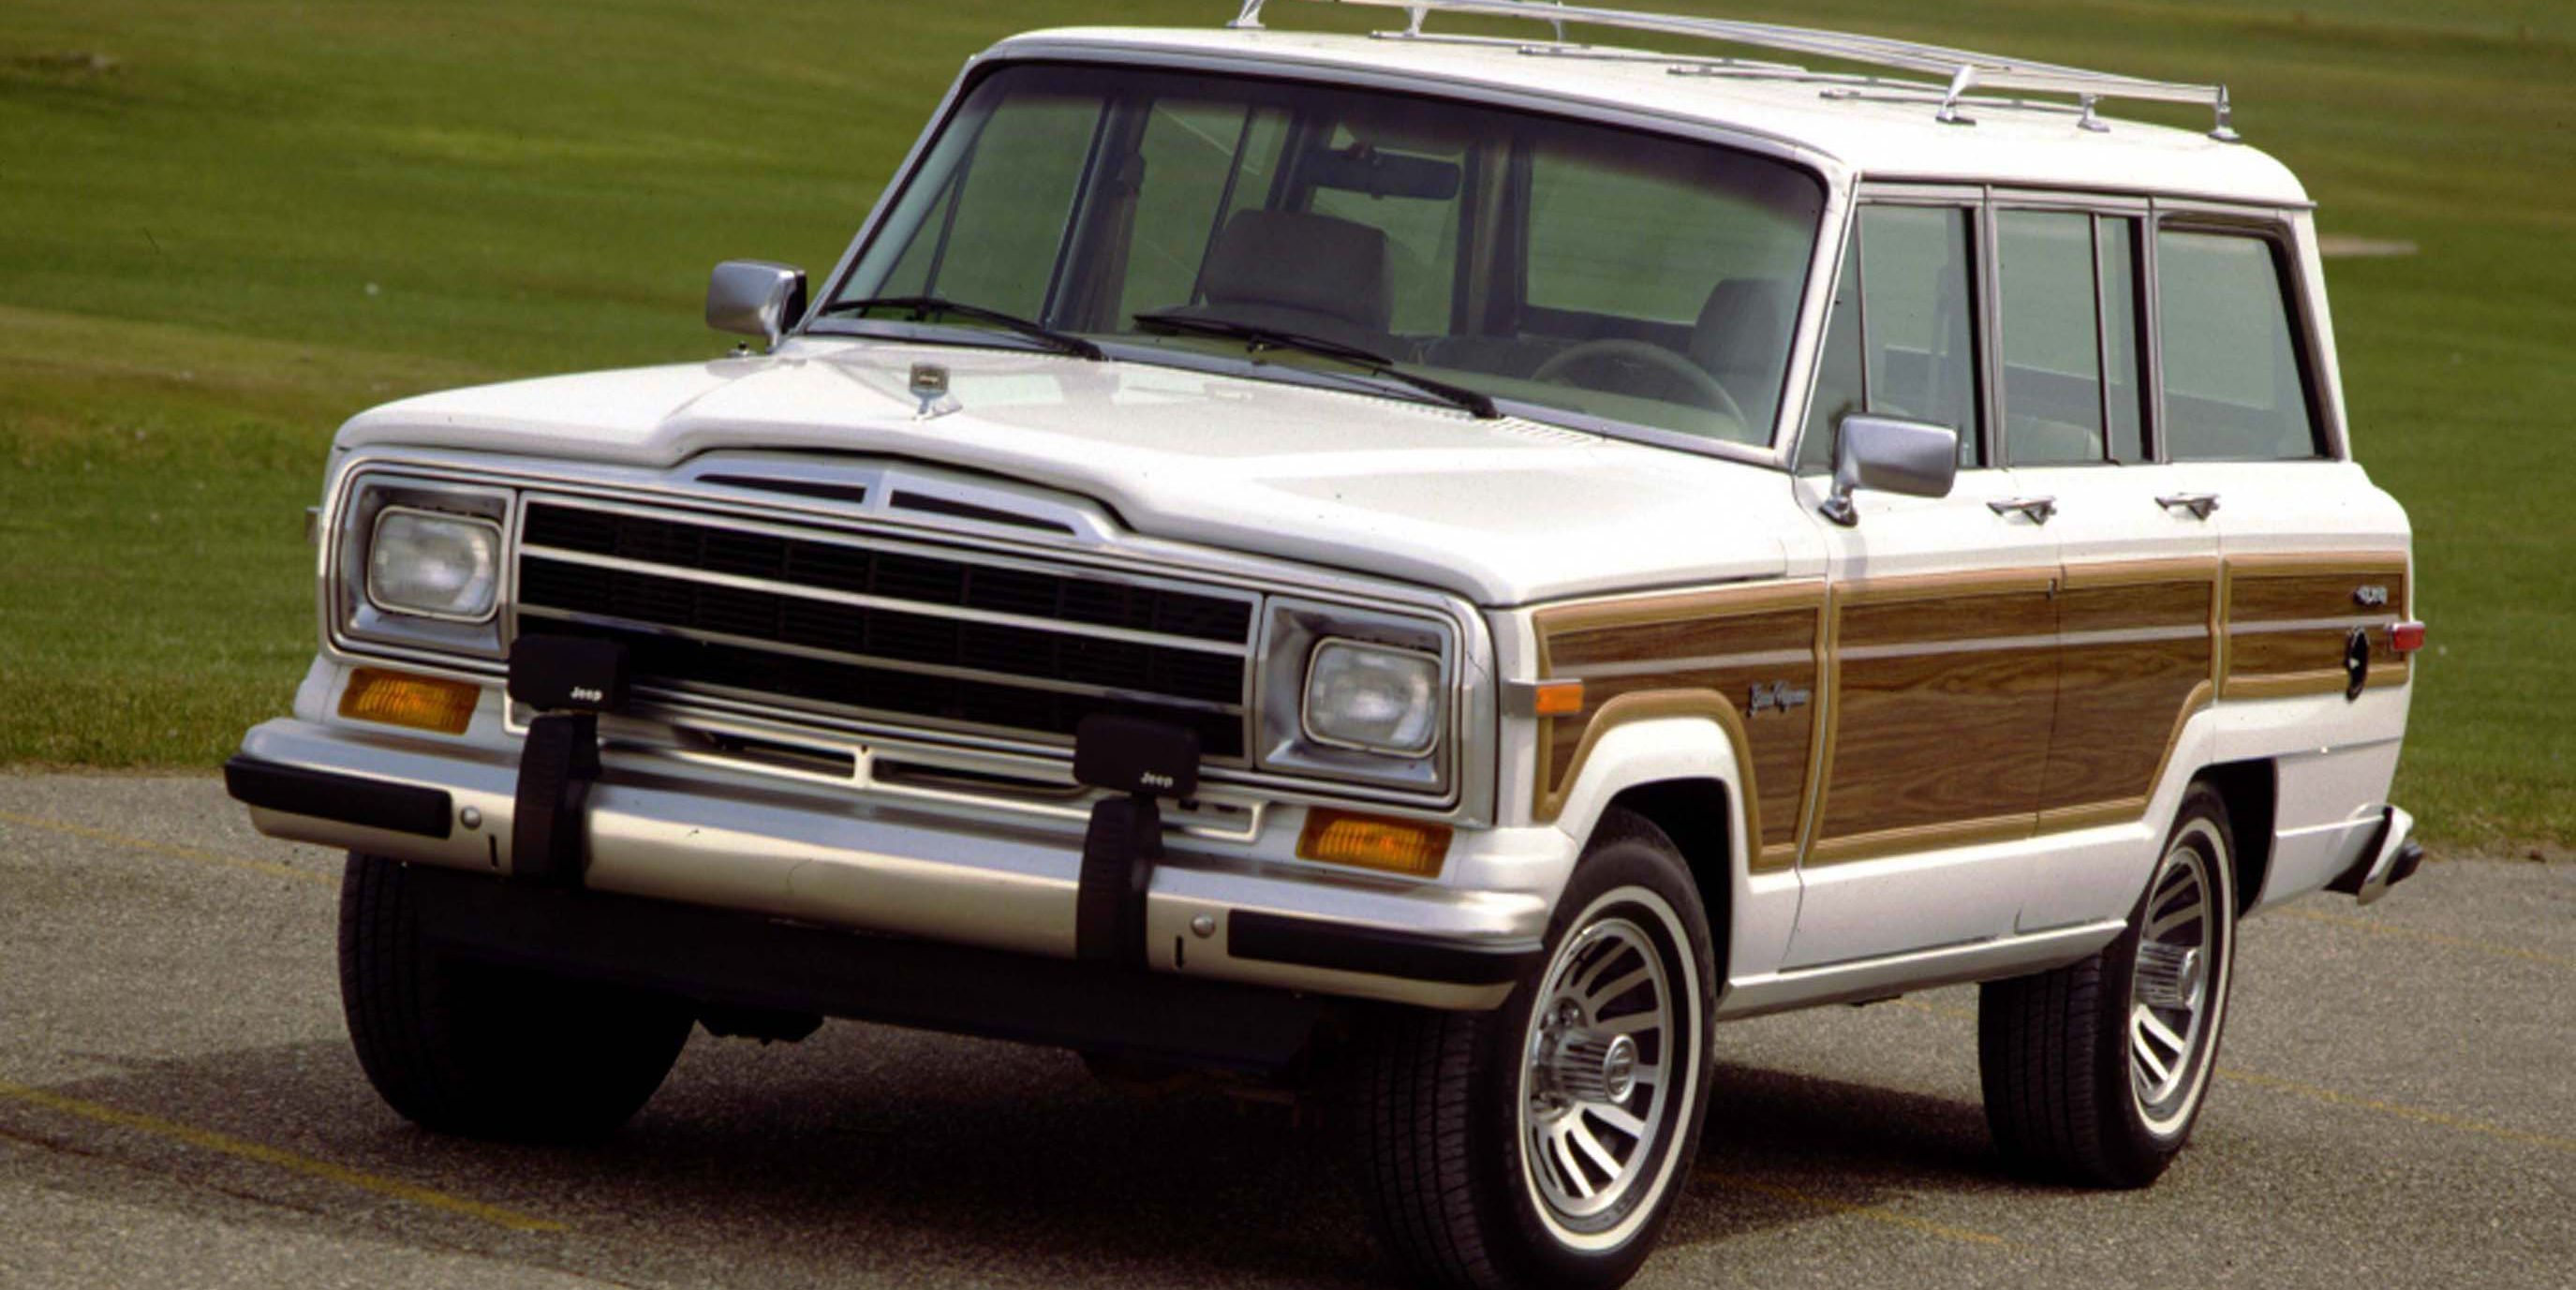 The Jeep Wagoneer And Grand Wagoneer Will Come Back In 2021 Jeep Wagoneer New Jeep Wagoneer Vintage Jeep